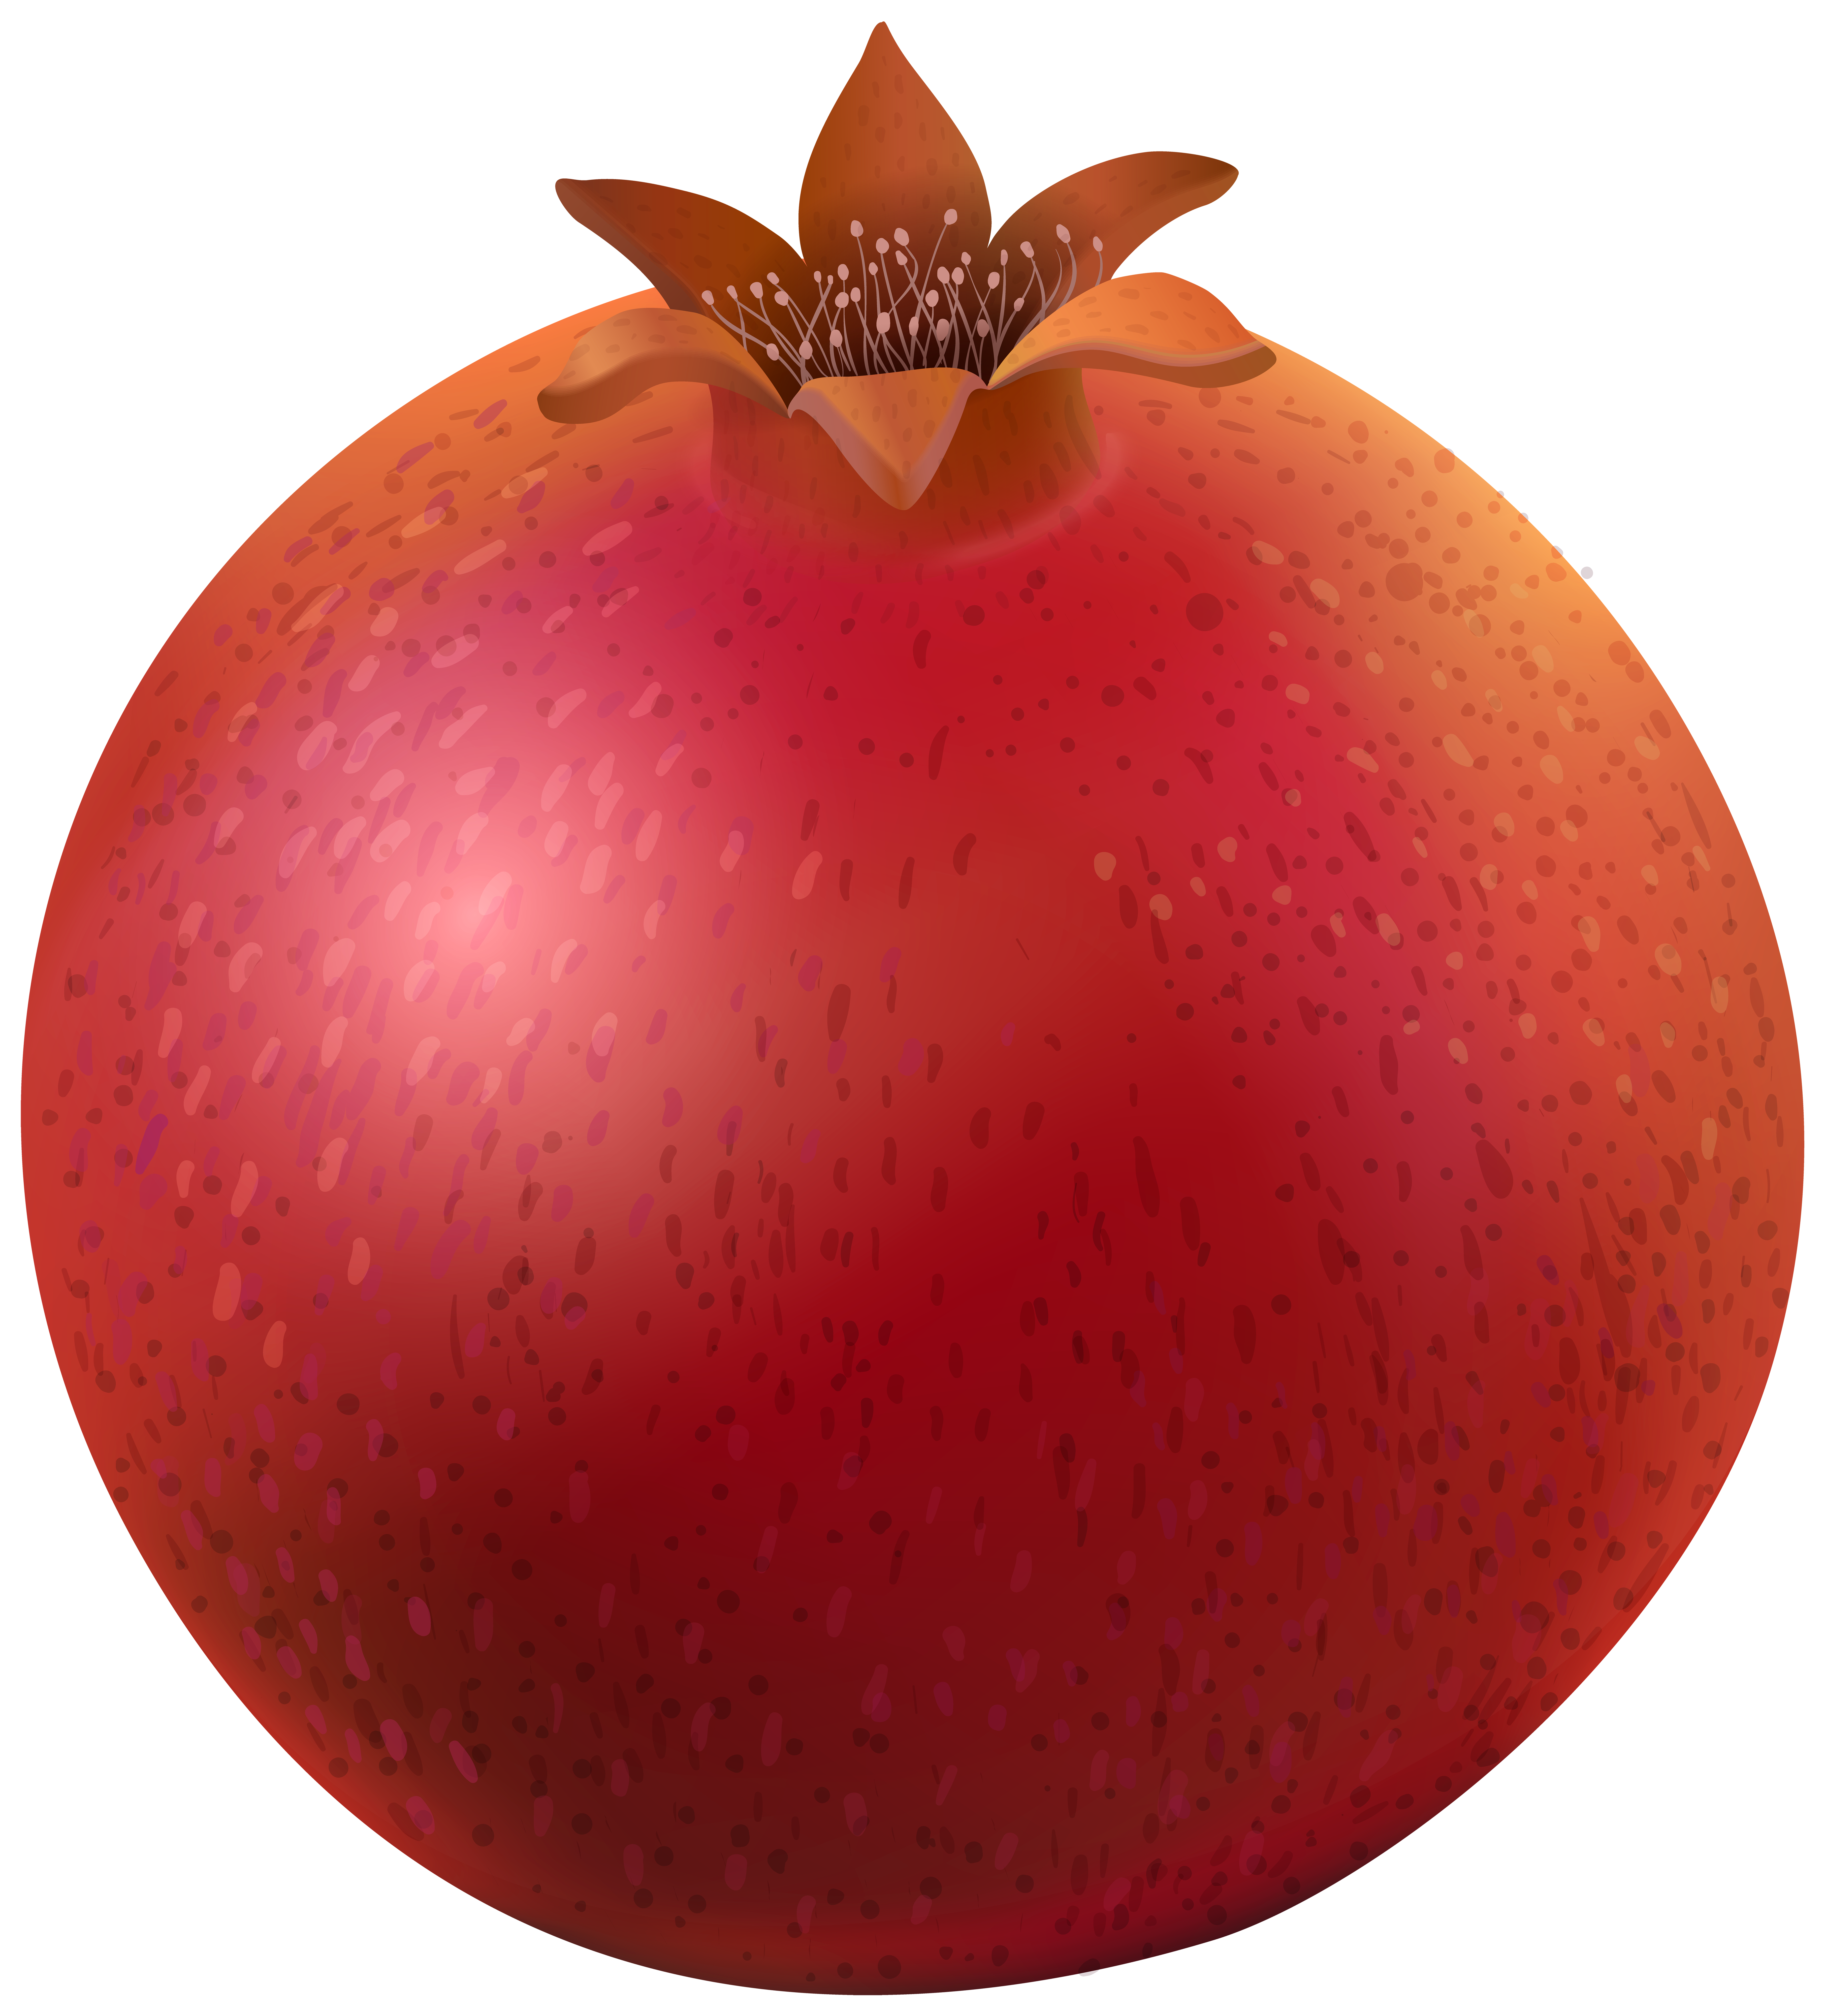 Png clip art image. Pomegranate clipart